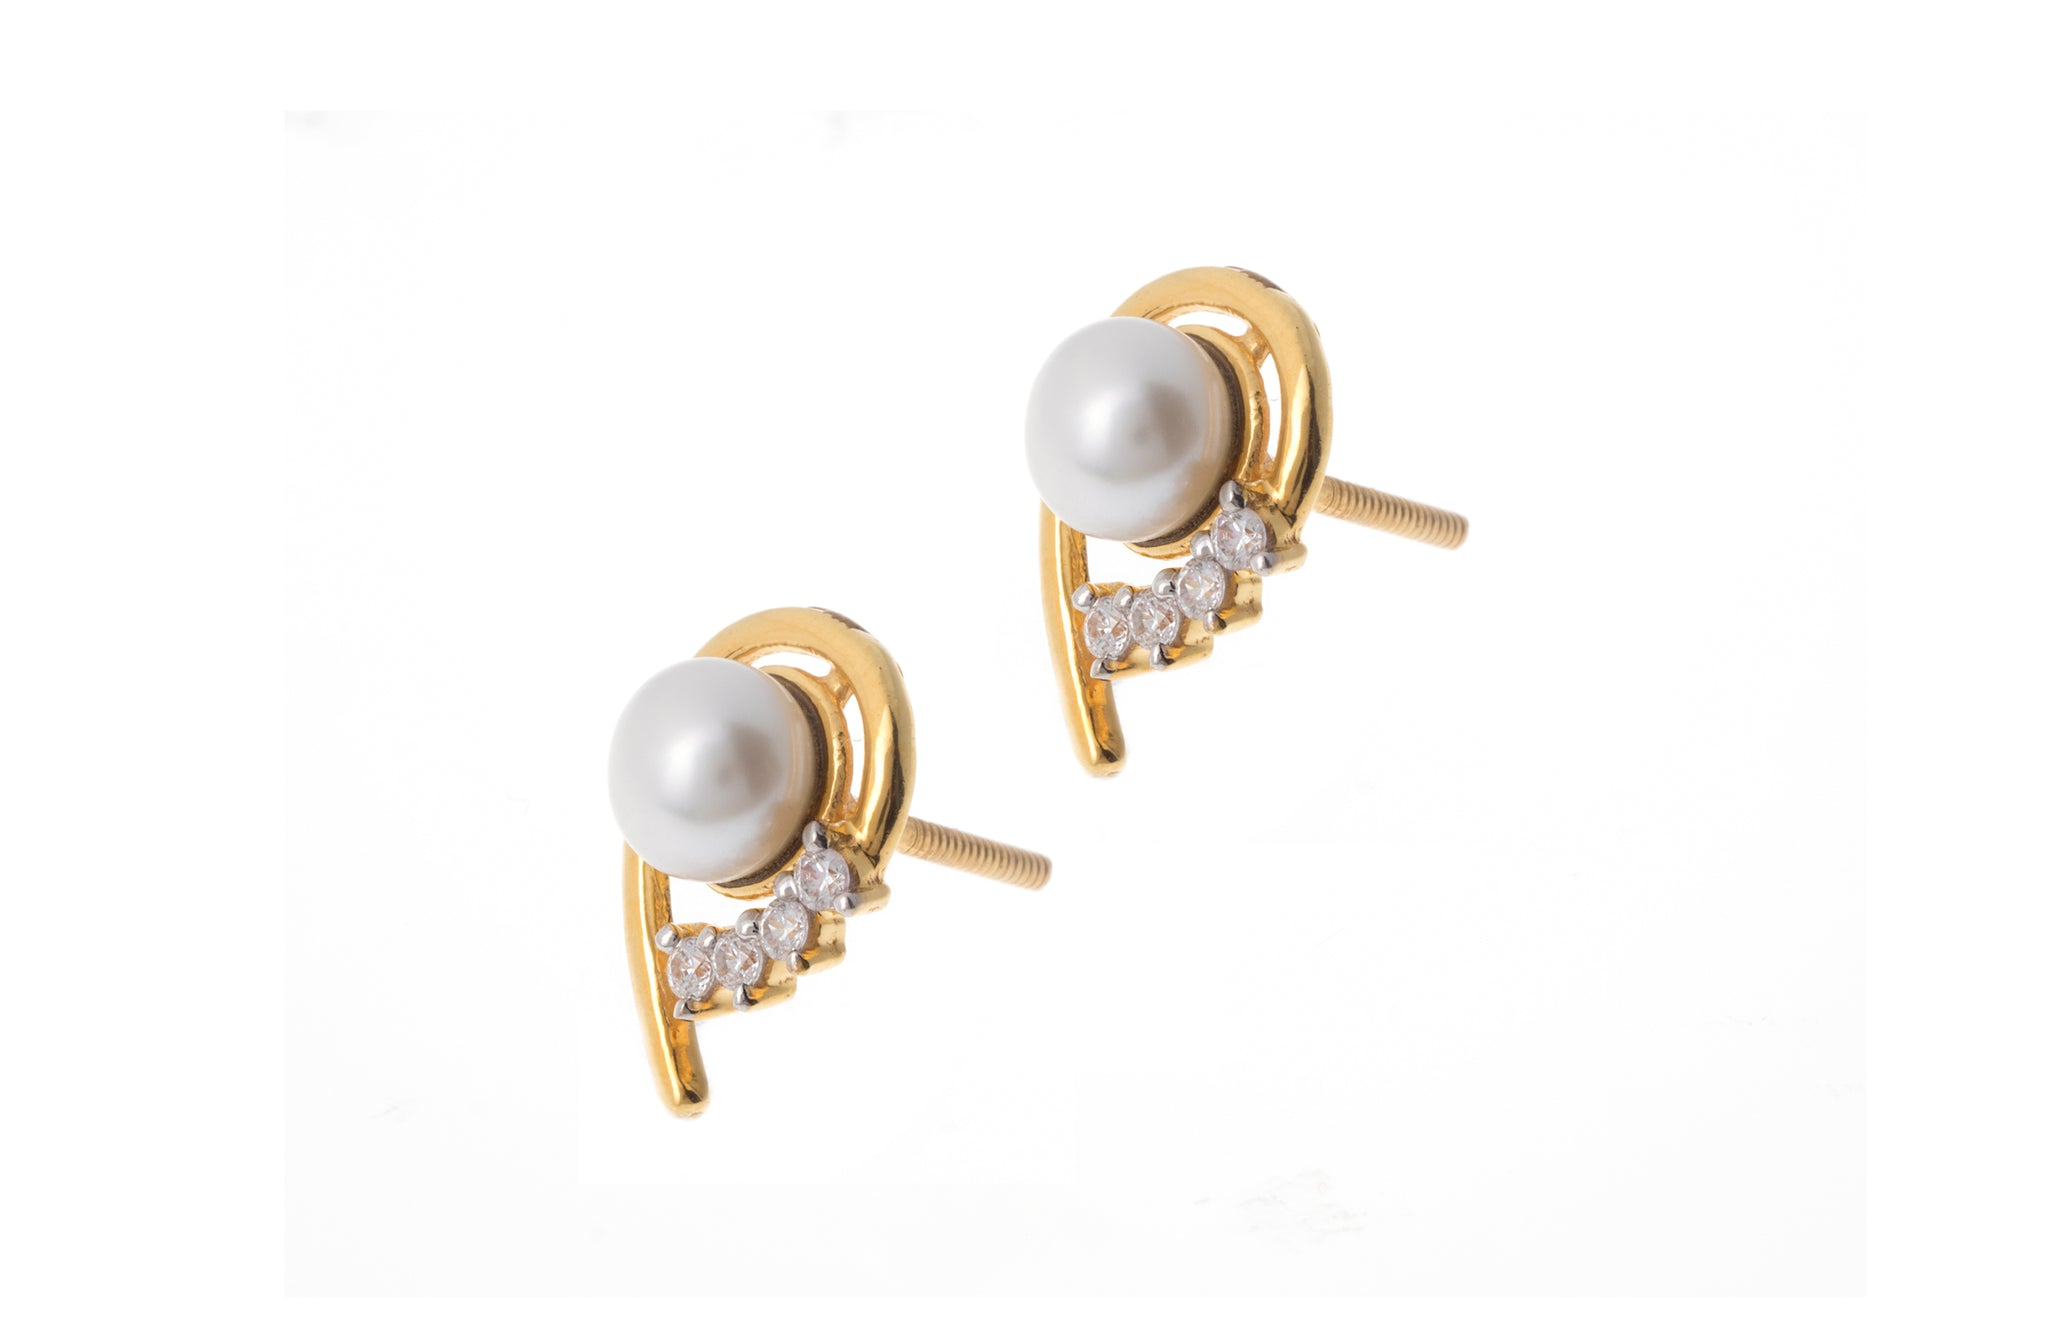 22ct Gold Cubic Zirconia and Cultured Pearl Stud Earrings (3.82g) ET14199